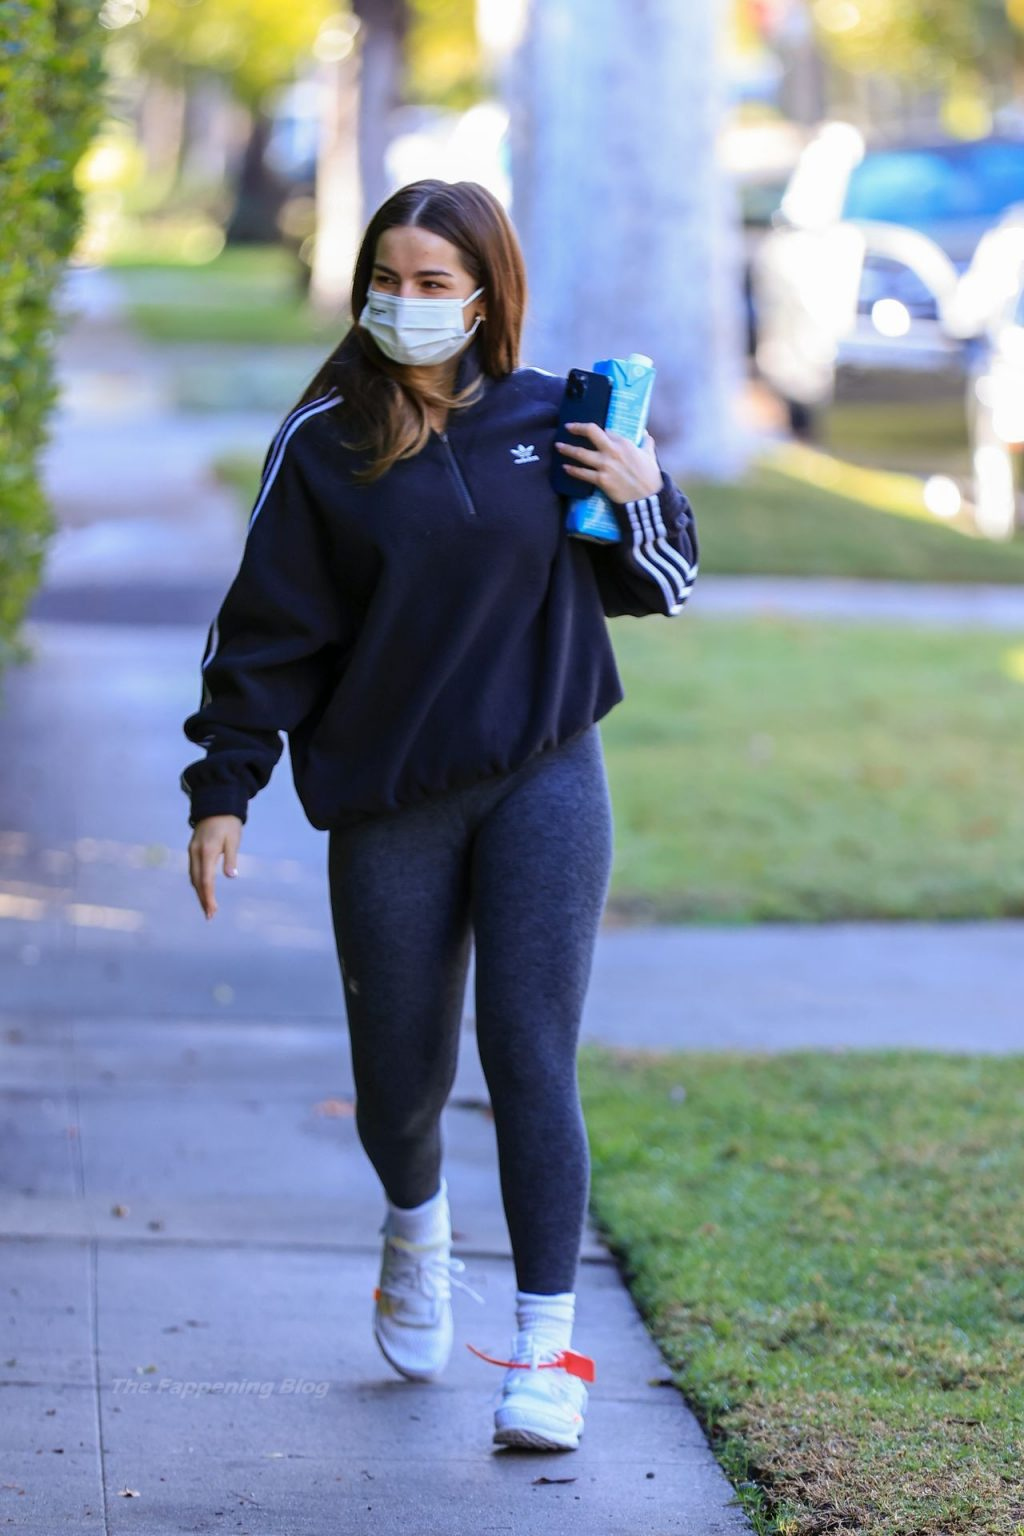 Addison Rae Arrives for Another Private Workout Session in LA (17 Photos)